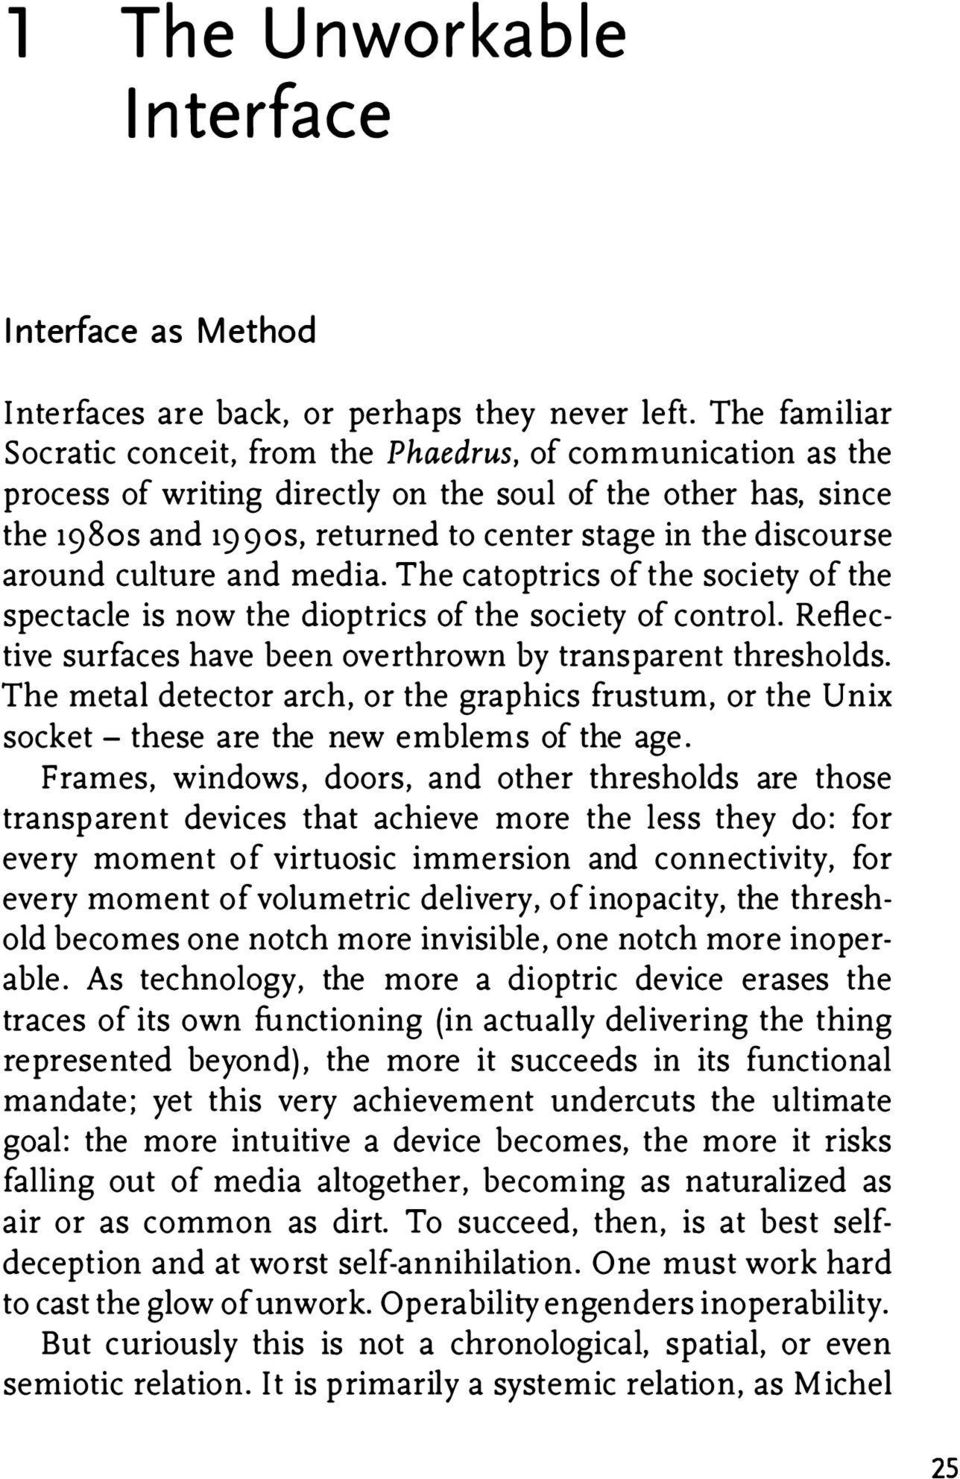 discourse around culture and media. The catoptrics of the society of the spectacle is now the dioptrics of the society of control. Reflective surfaces have been overthrown by transparent thresholds.